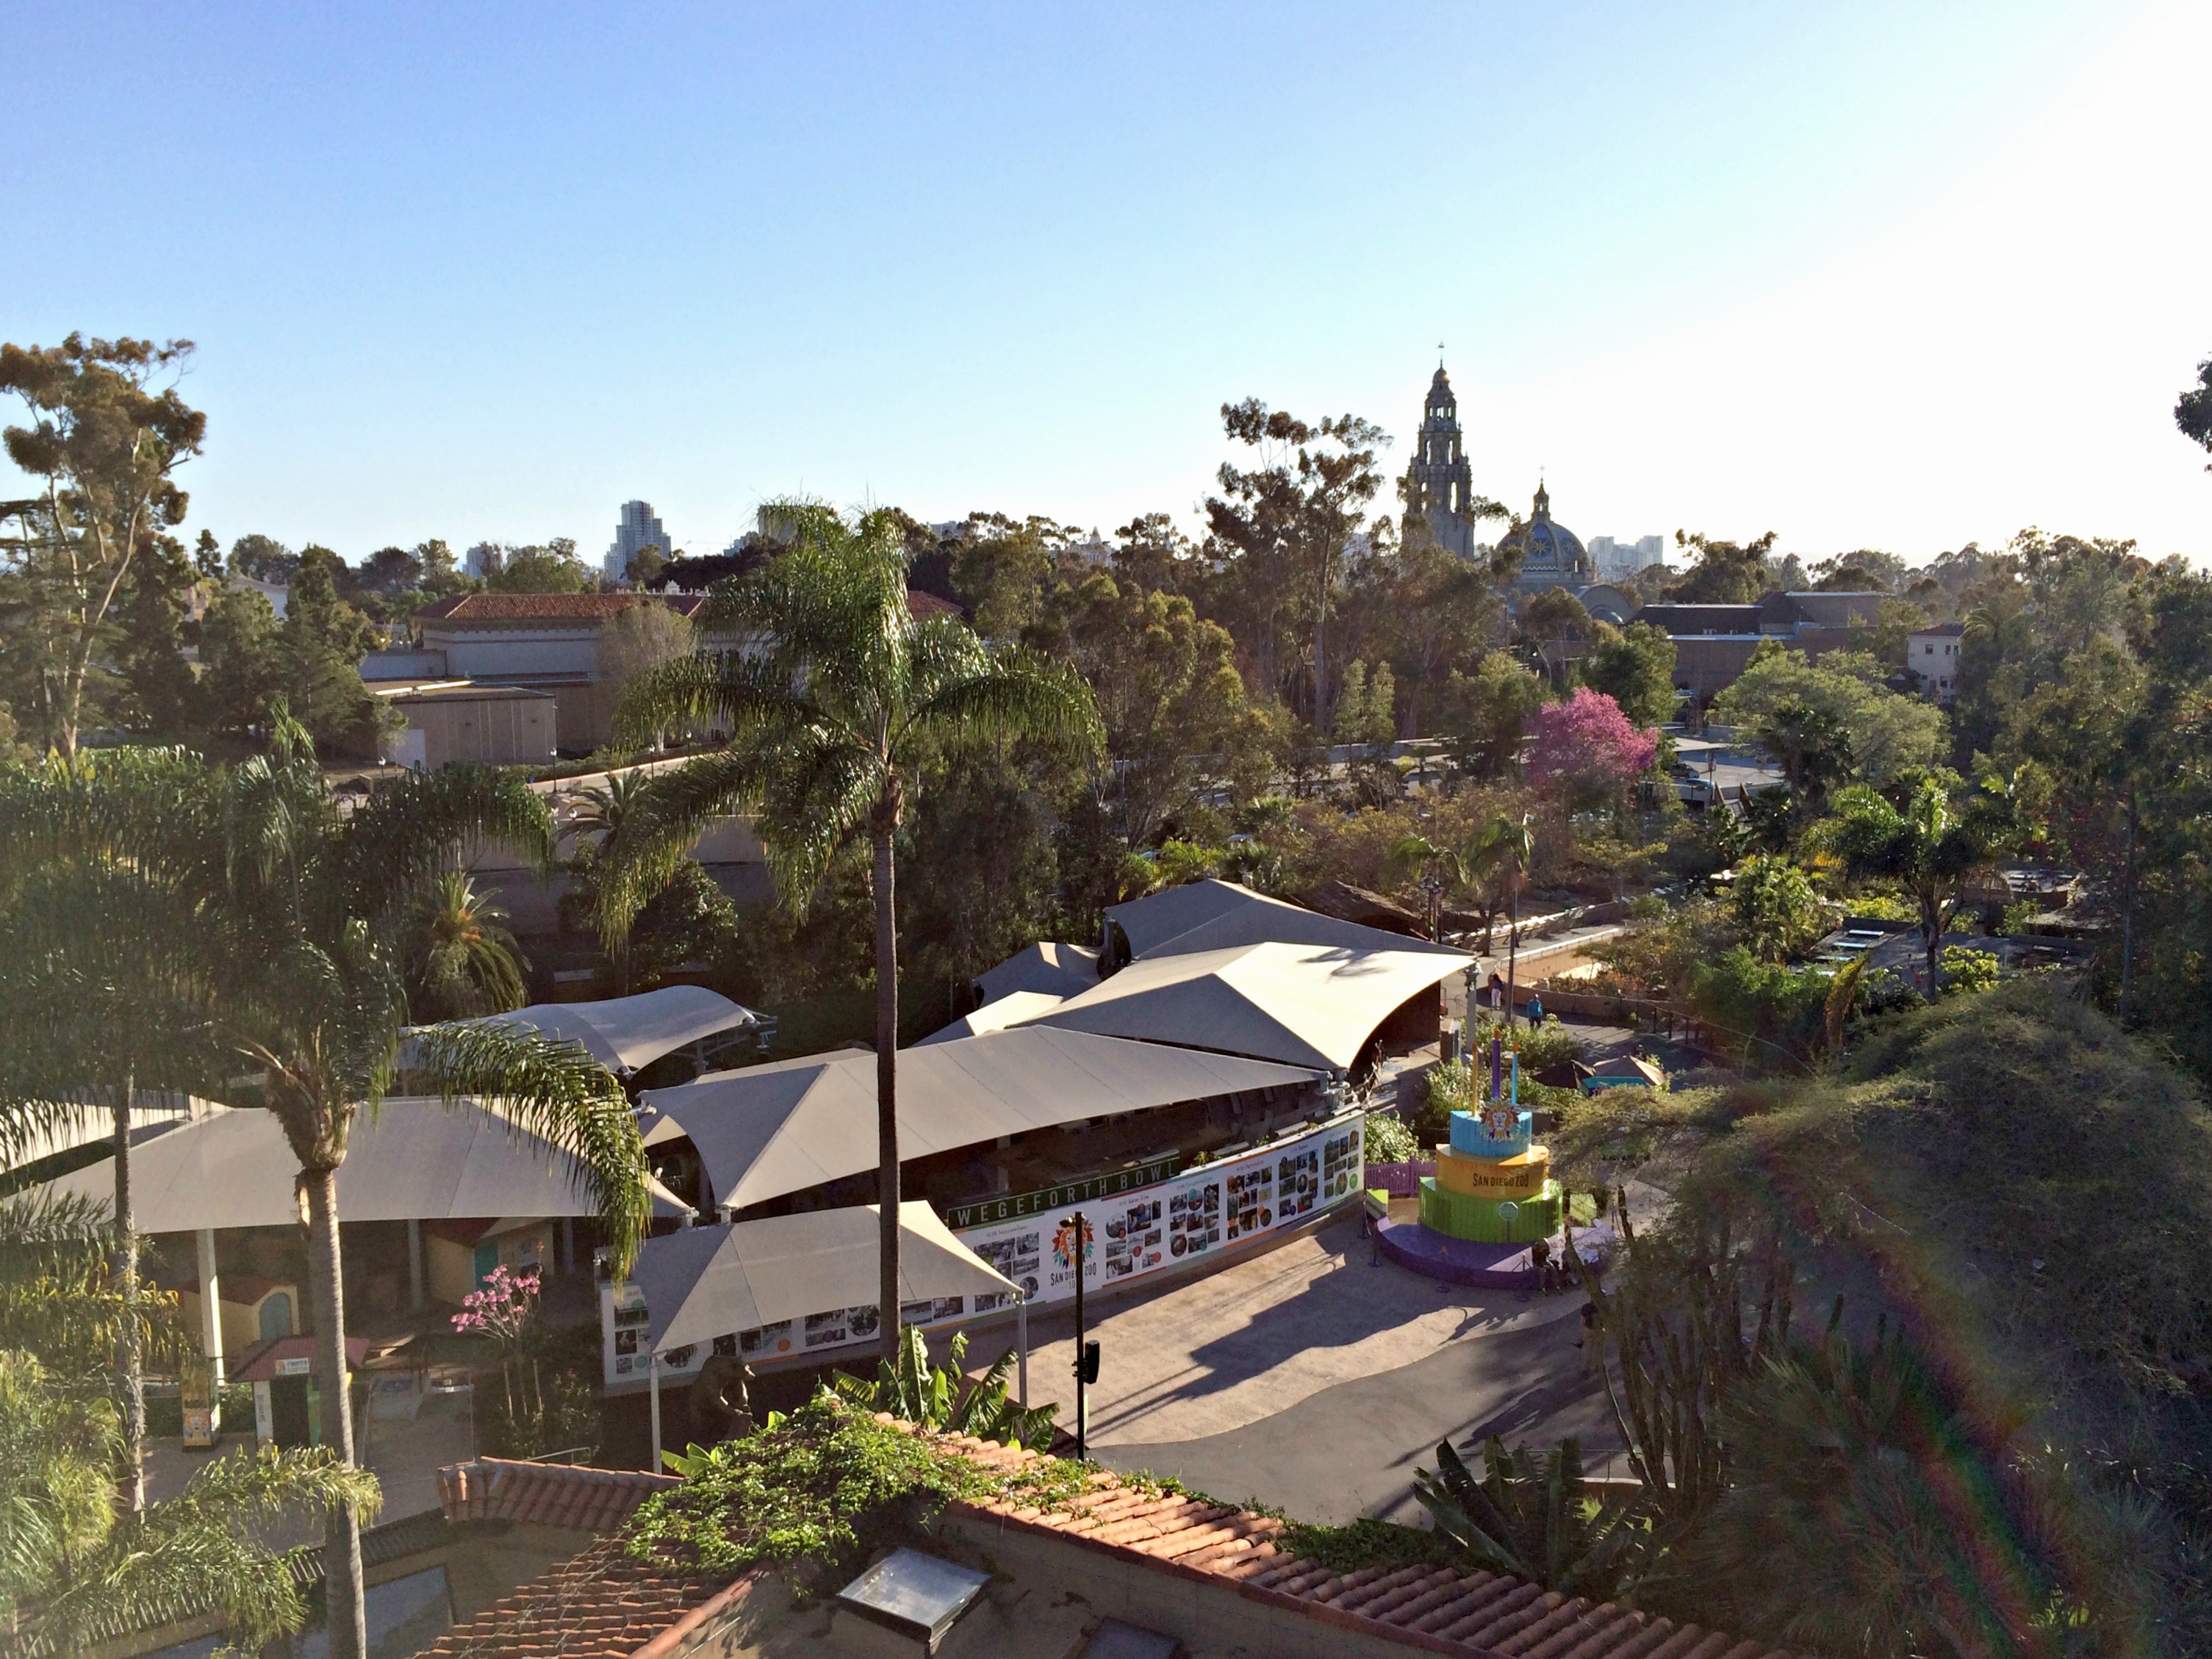 san diego zoo skyway view